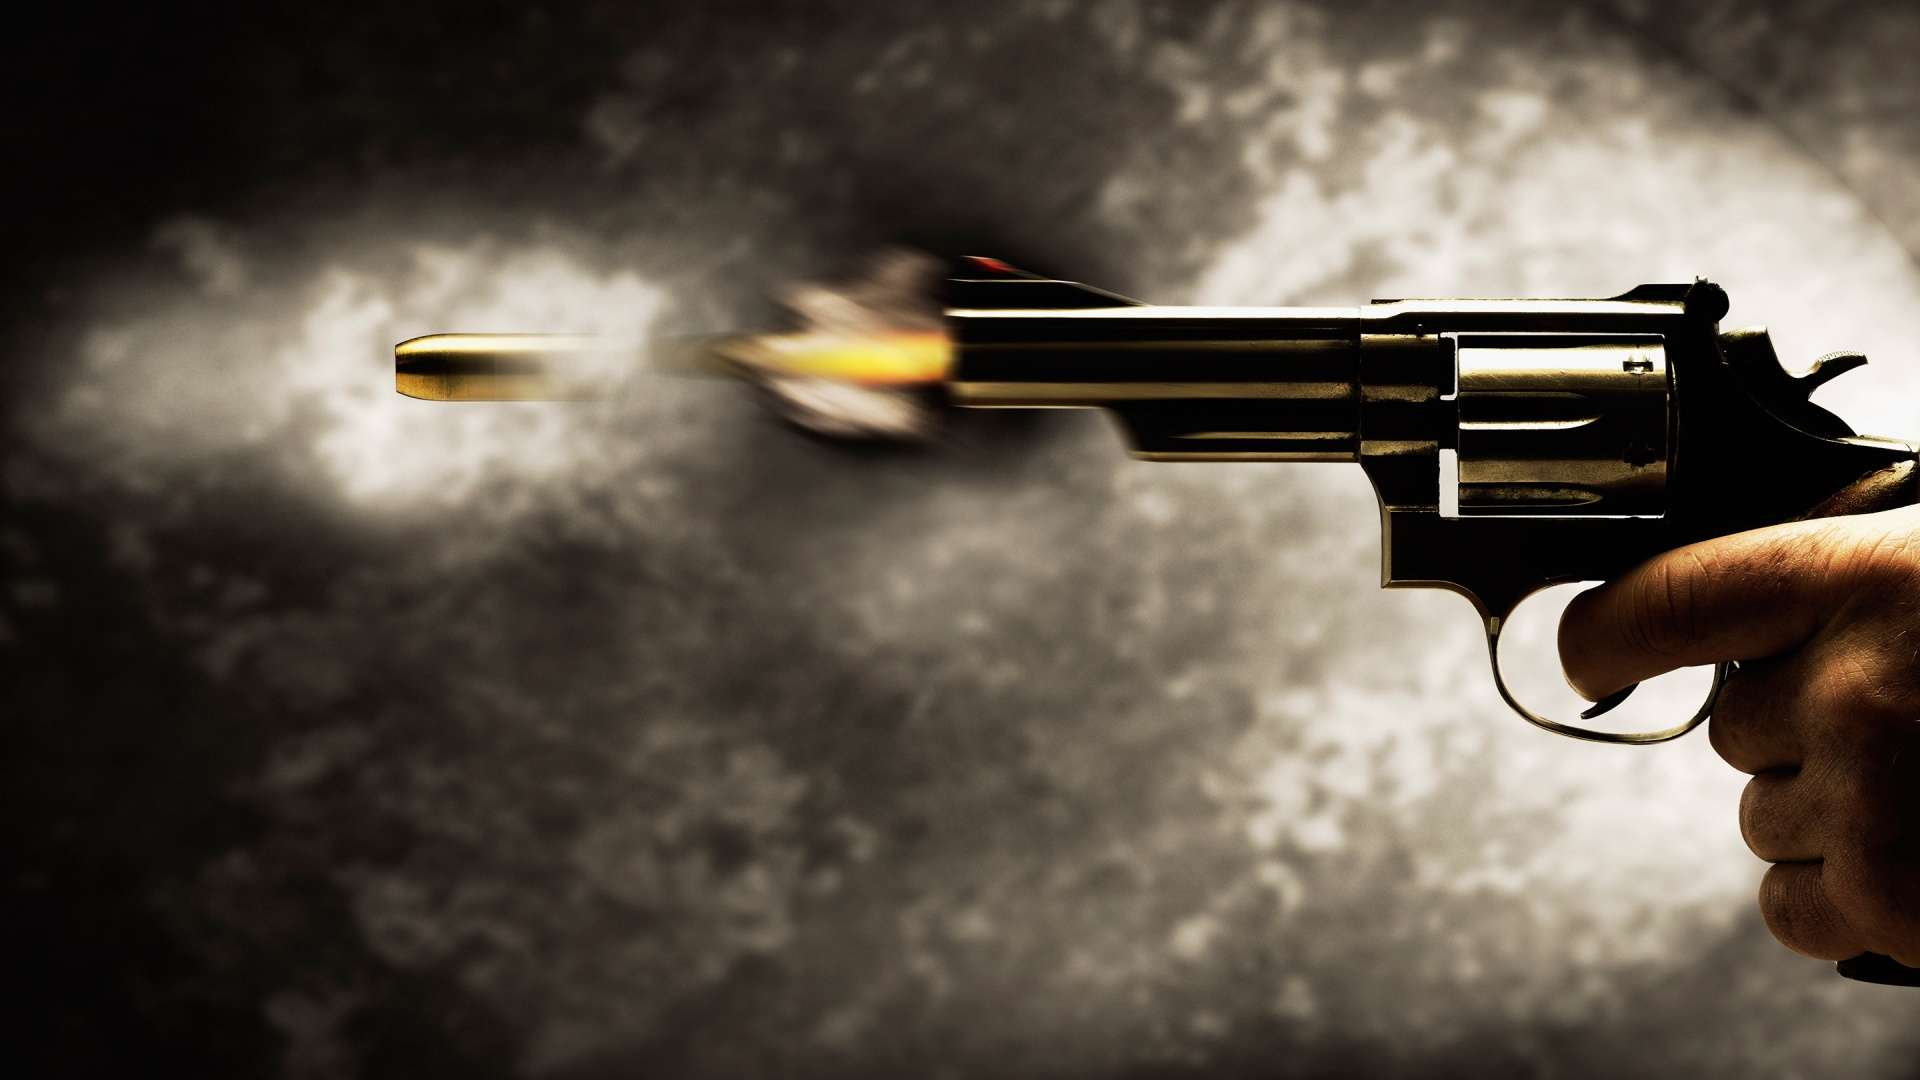 Fantastic Bullet Wallpaper